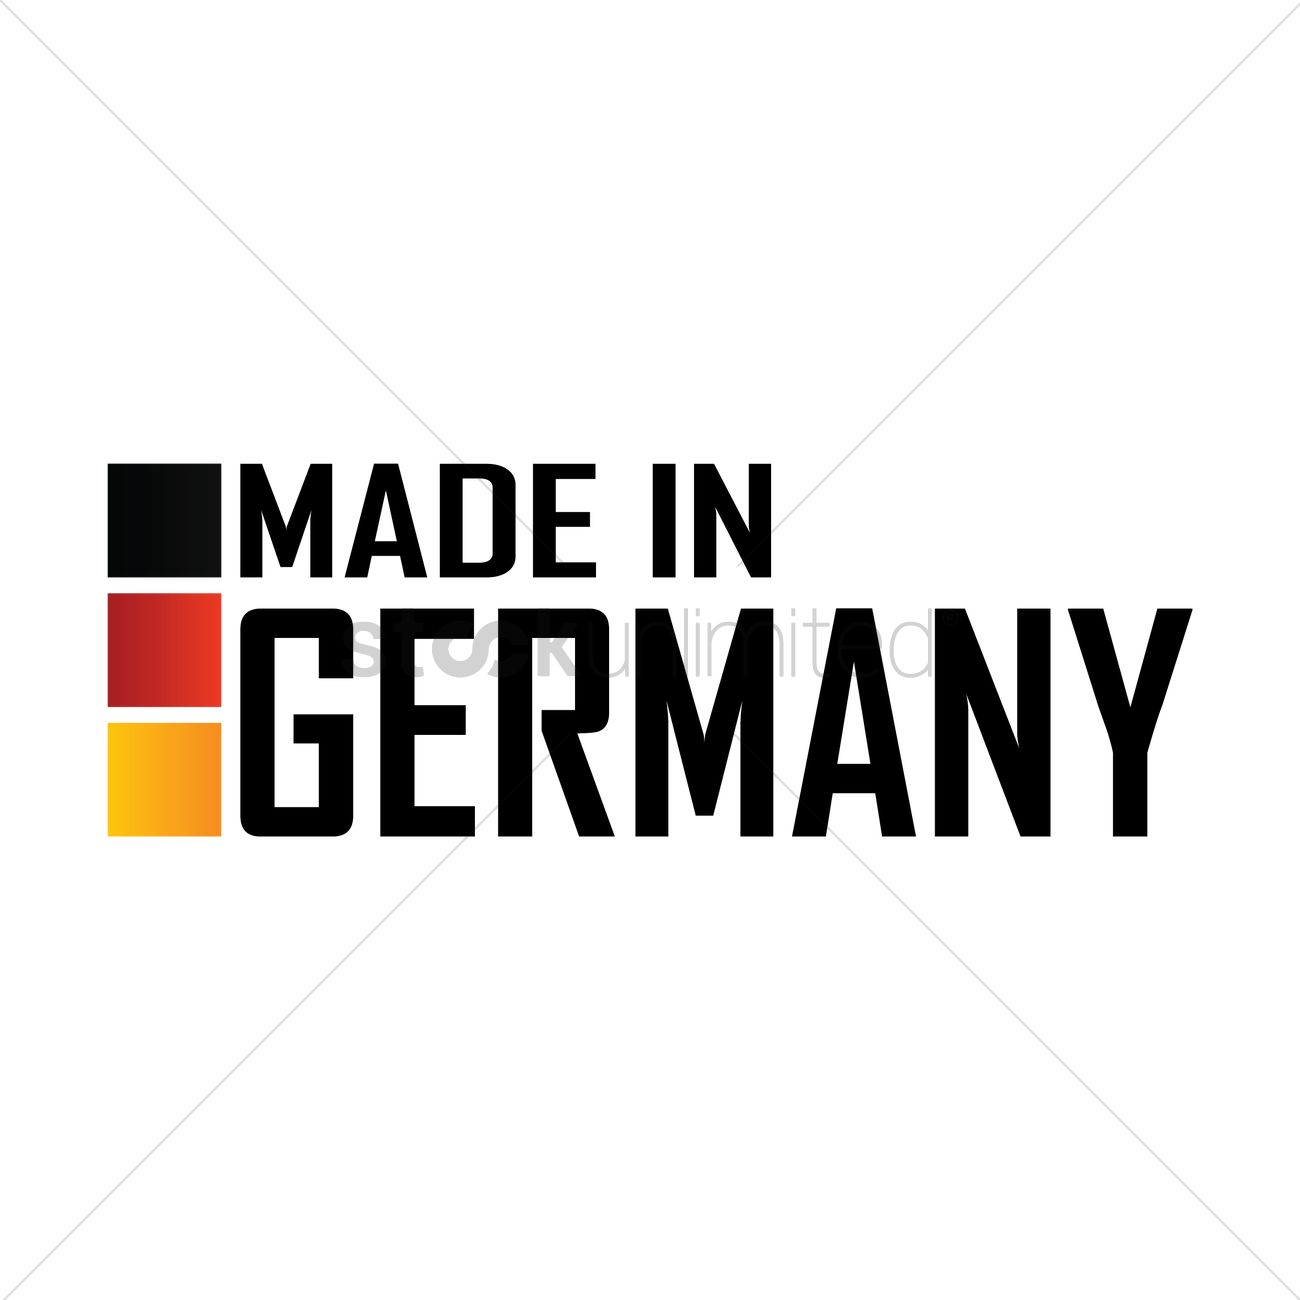 Made In Germany Label Design Vector Image 1976813 Stockunlimited